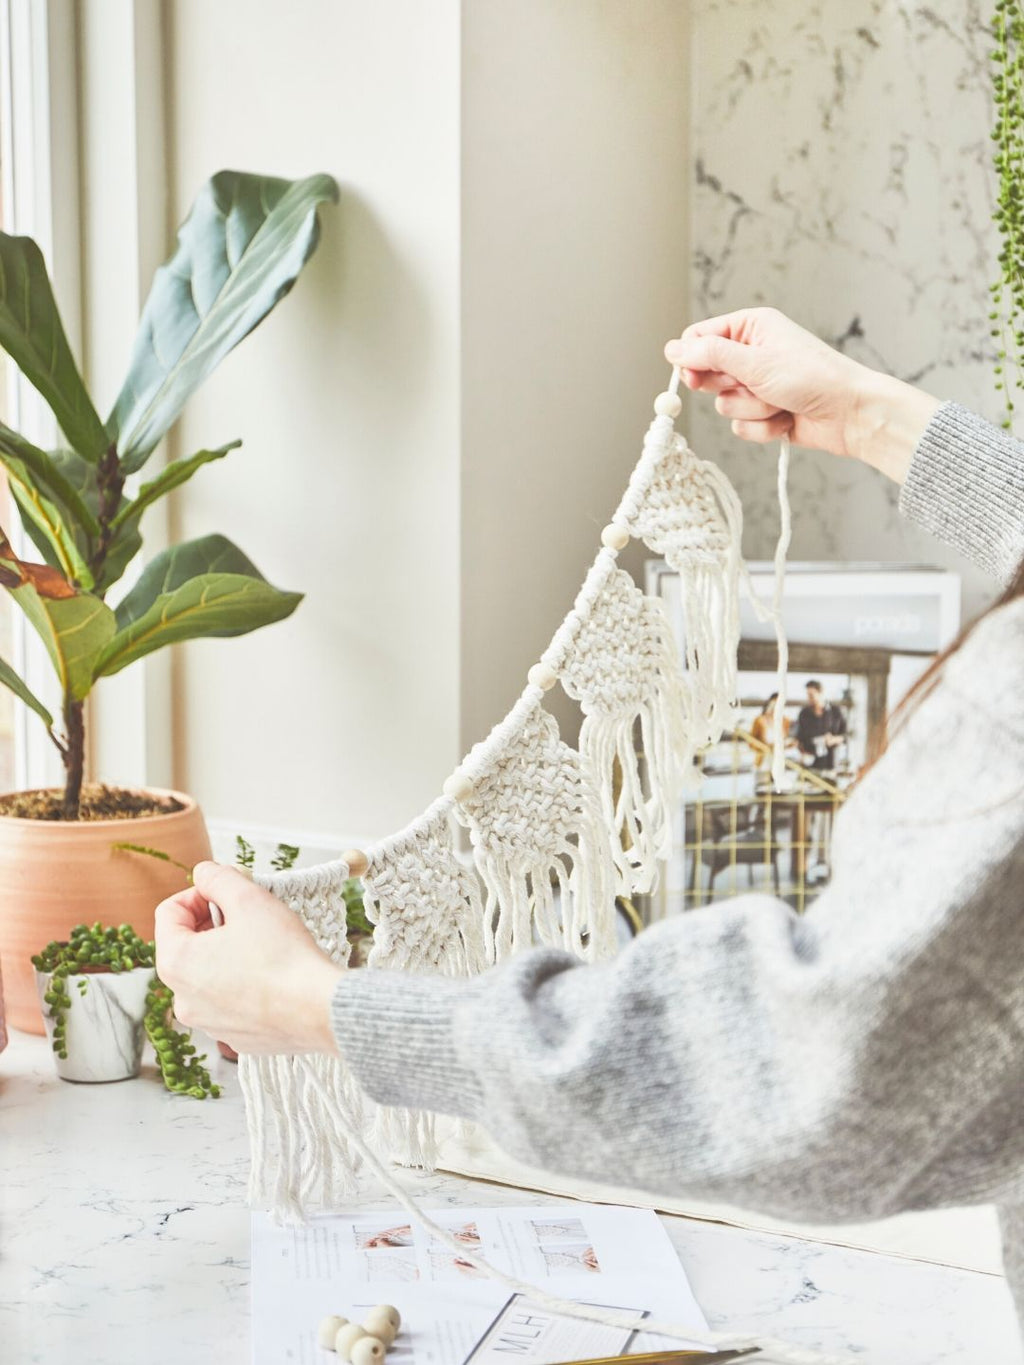 Macrame Bunting Craft Kit